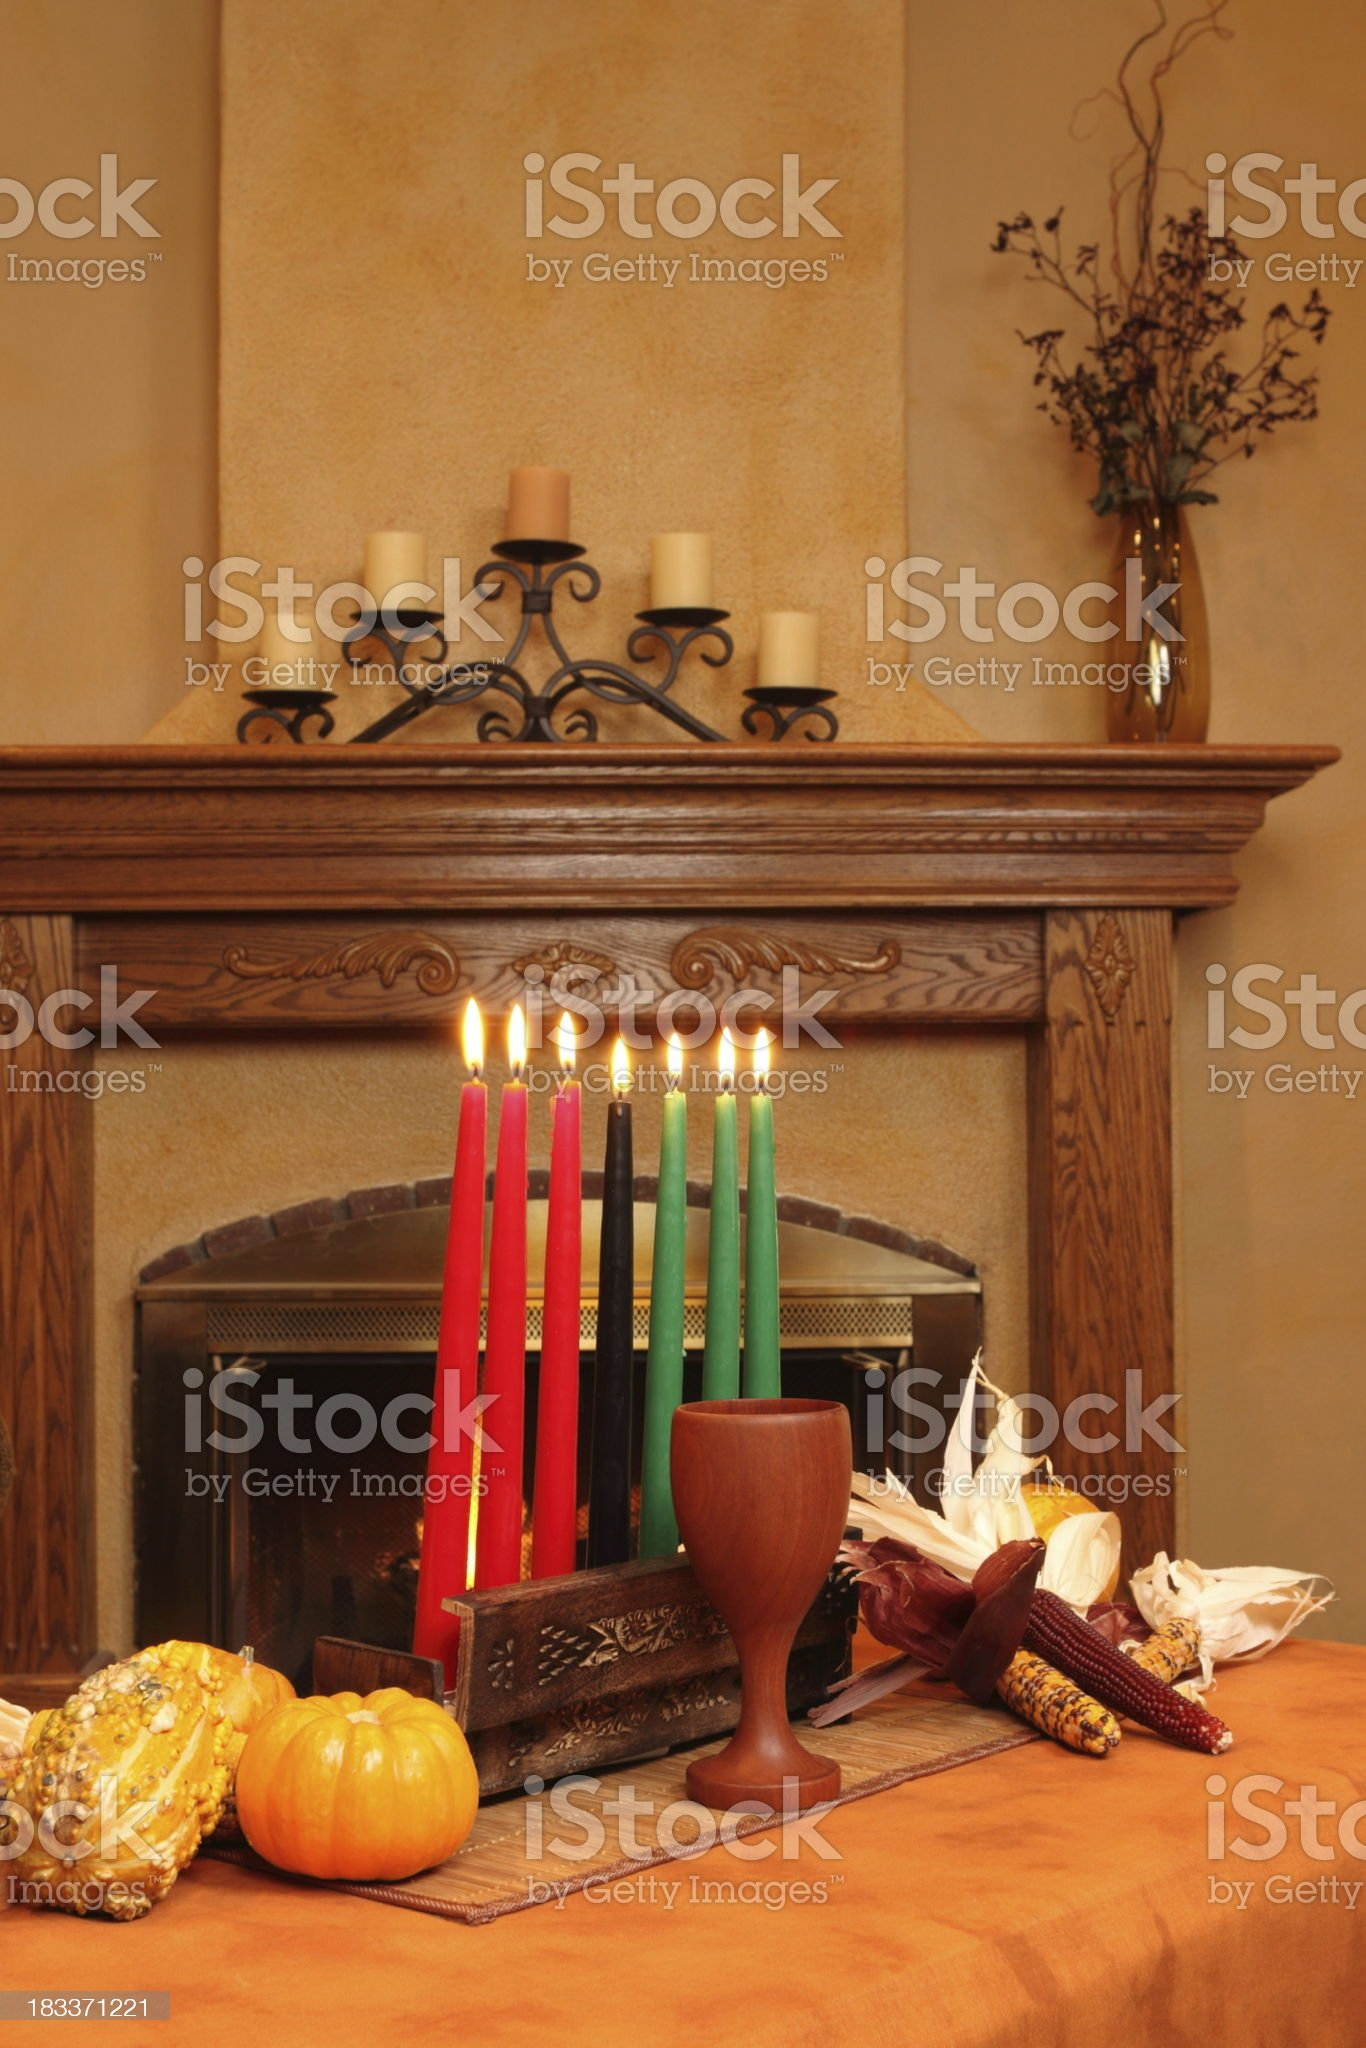 Kwanzaa Candles By Fireplace All Lit Vertical royalty-free stock photo